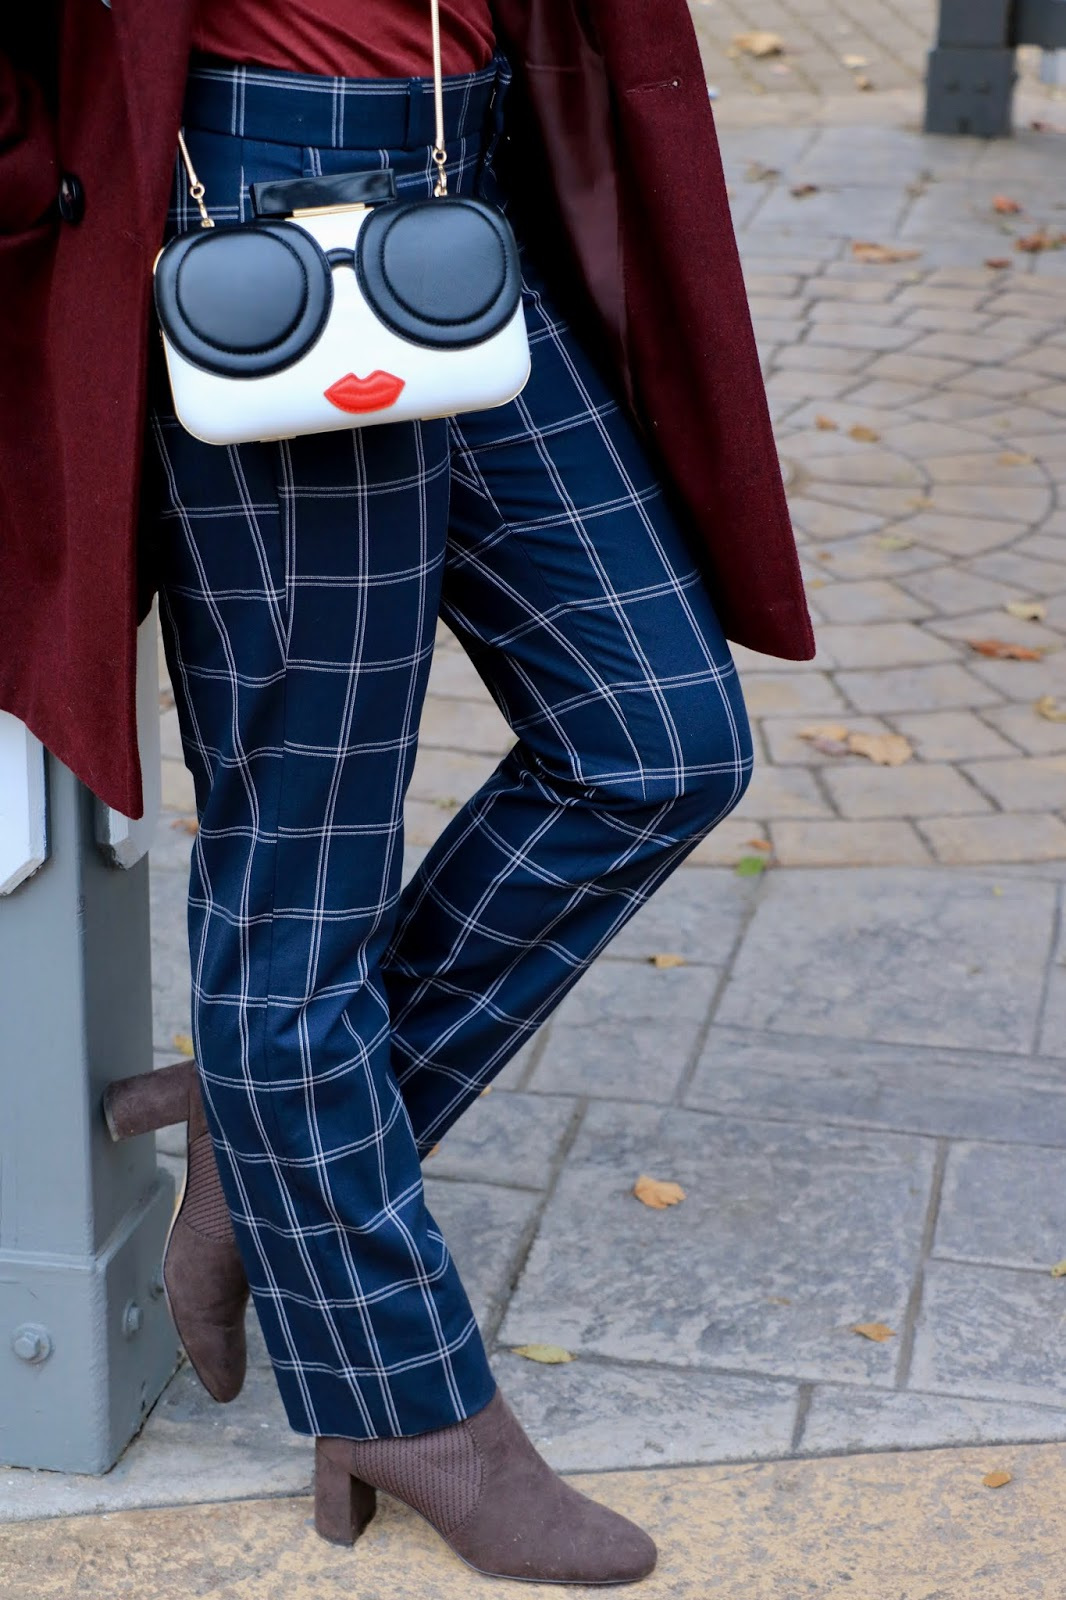 Nyc fashion blogger Kathleen Harper wearing windowpane pants.